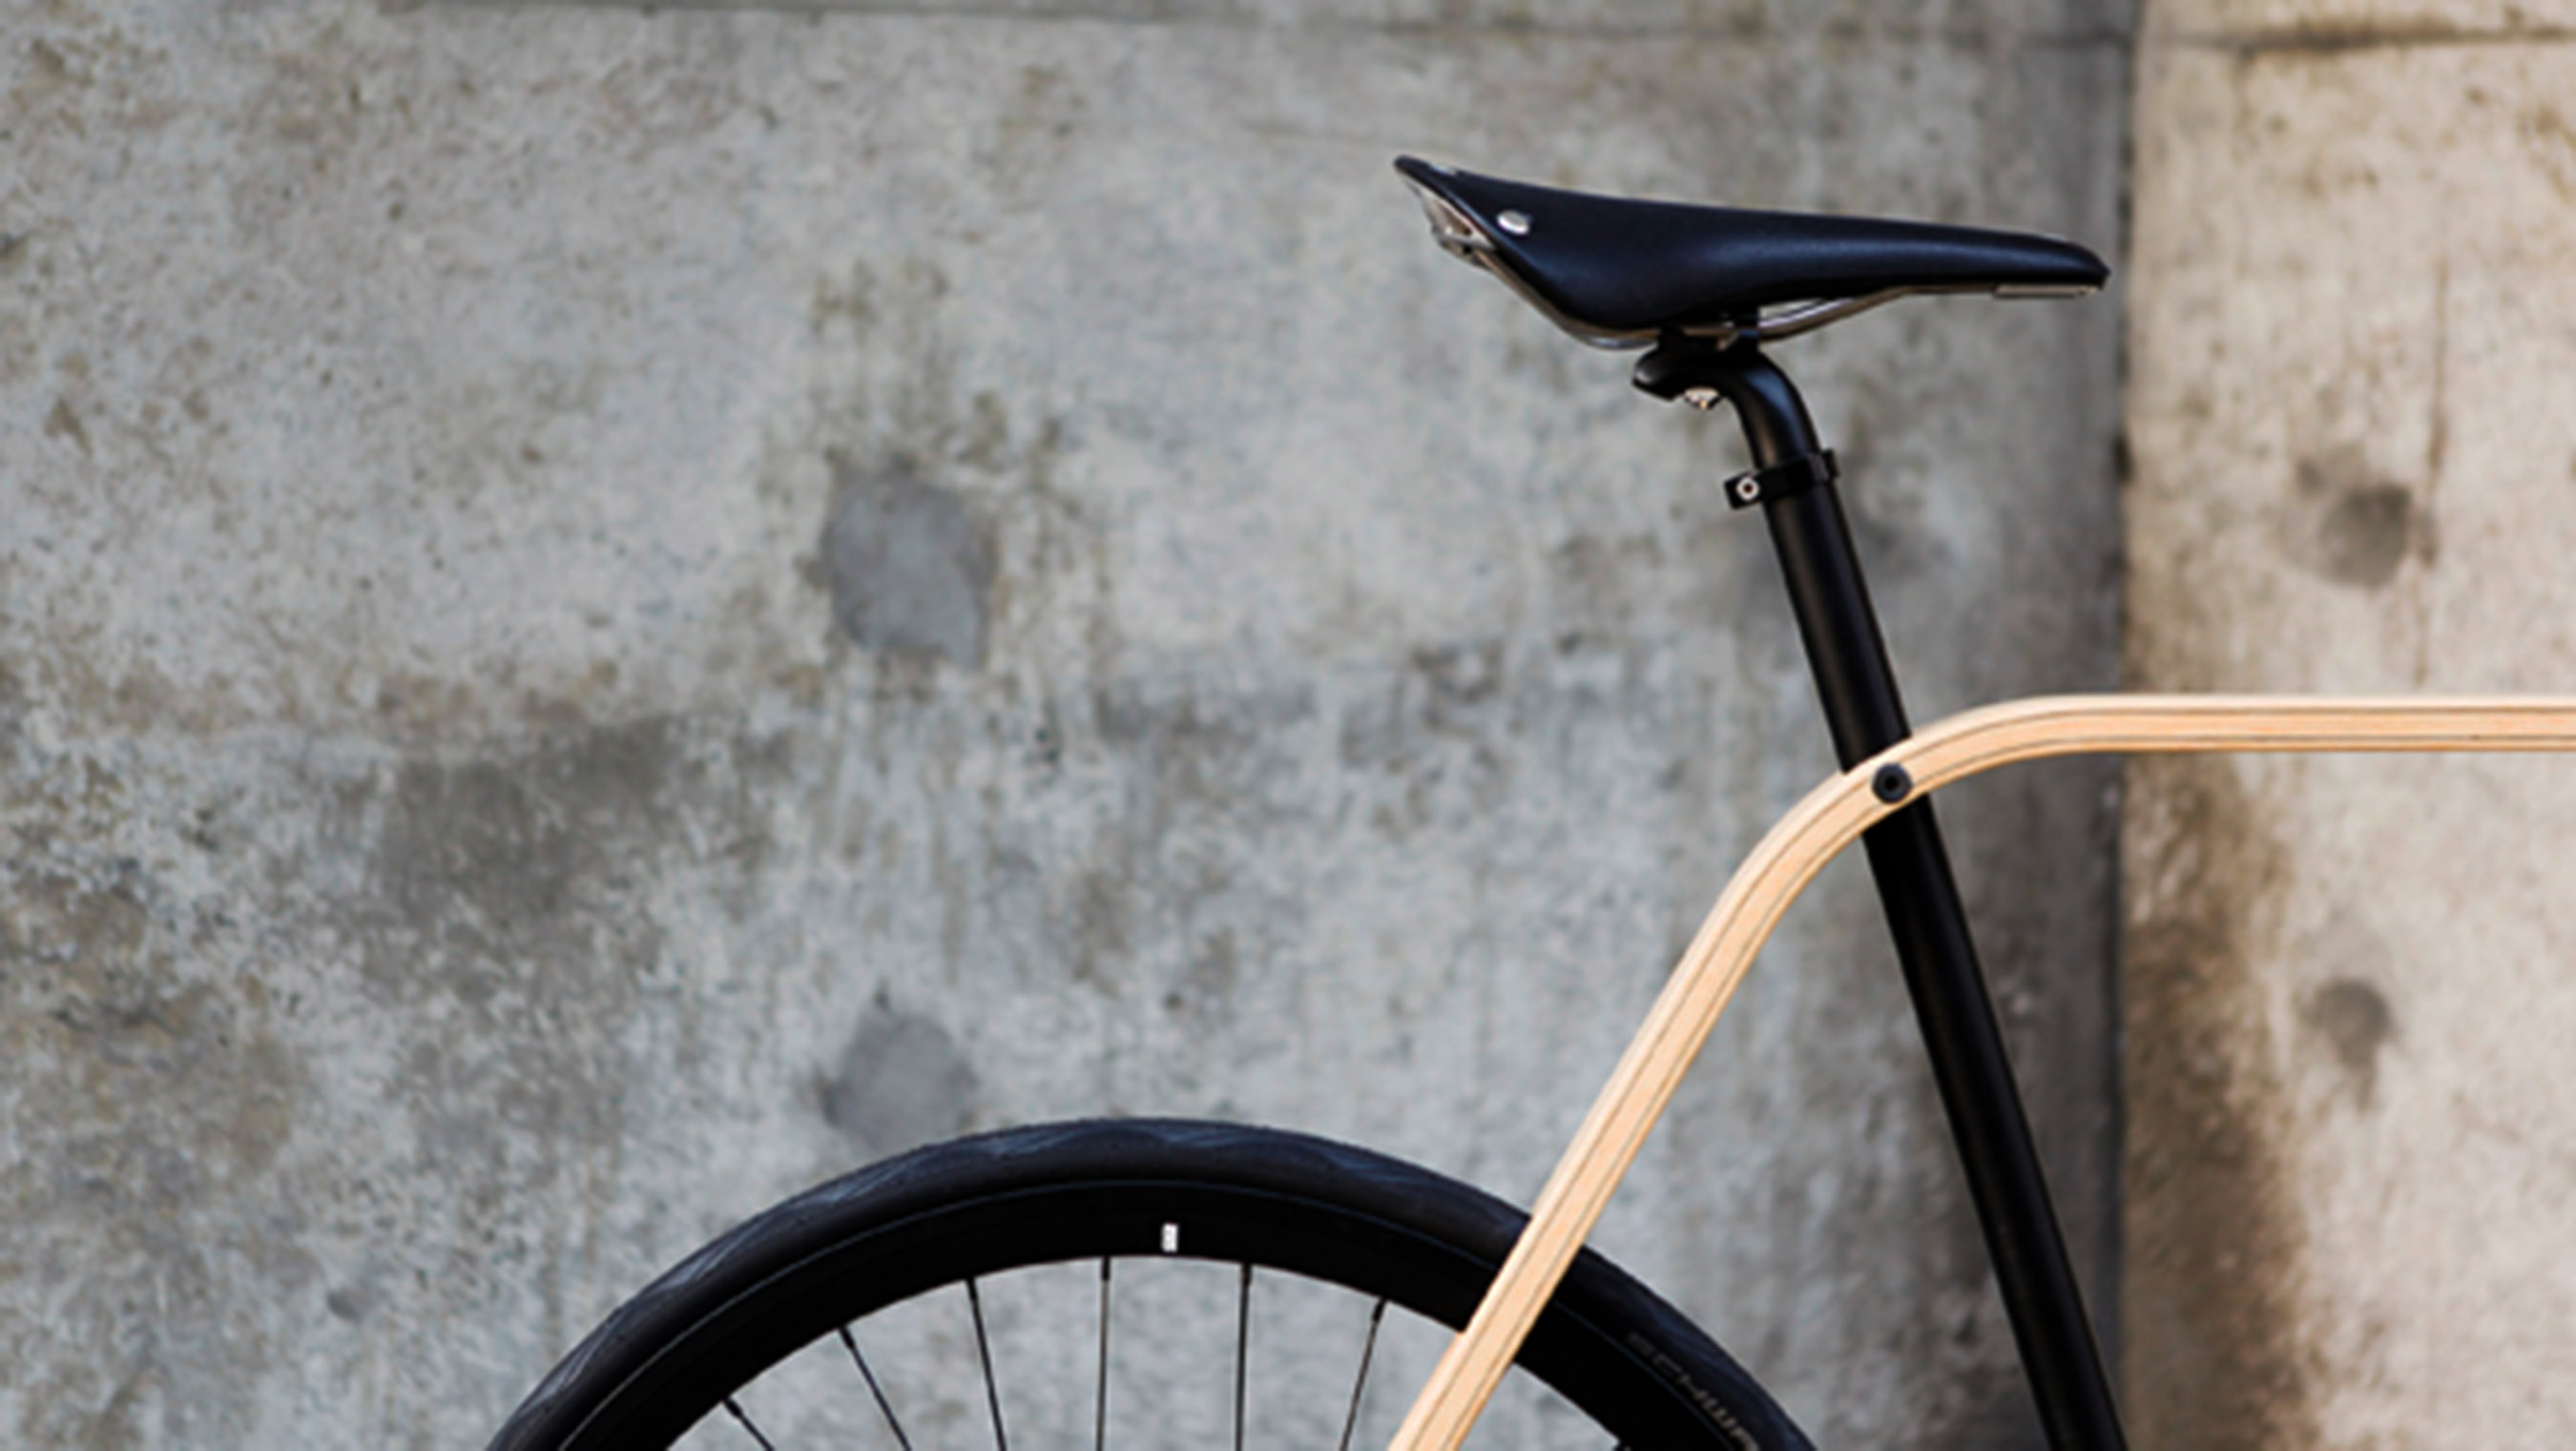 Alma Bicycles - Daily Cappuccino - Lifestyle Blog